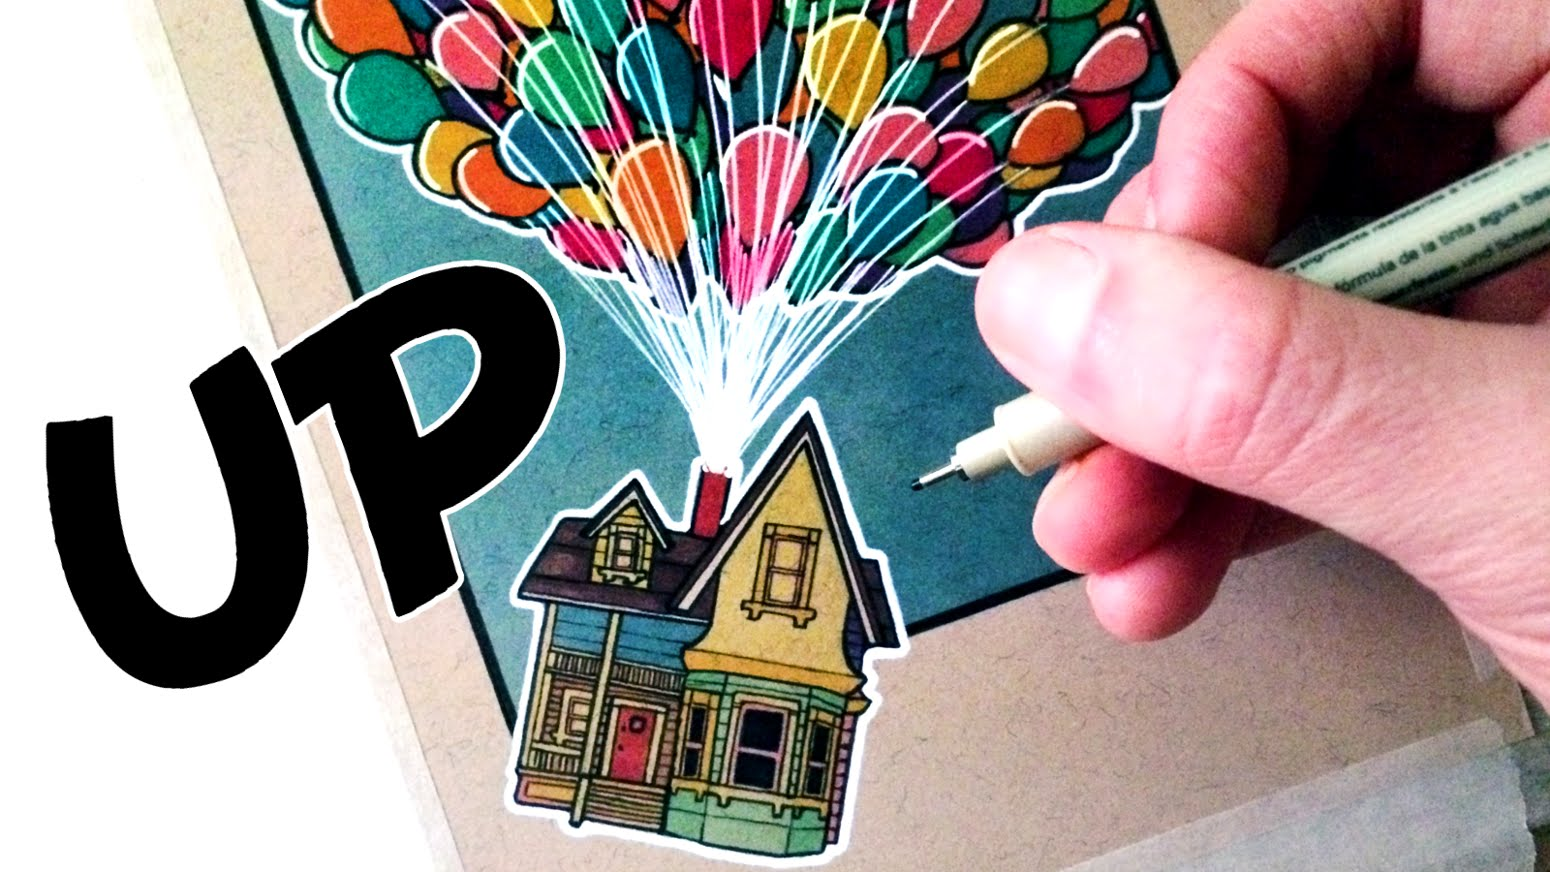 1550x872 Let's Draw The House From Up